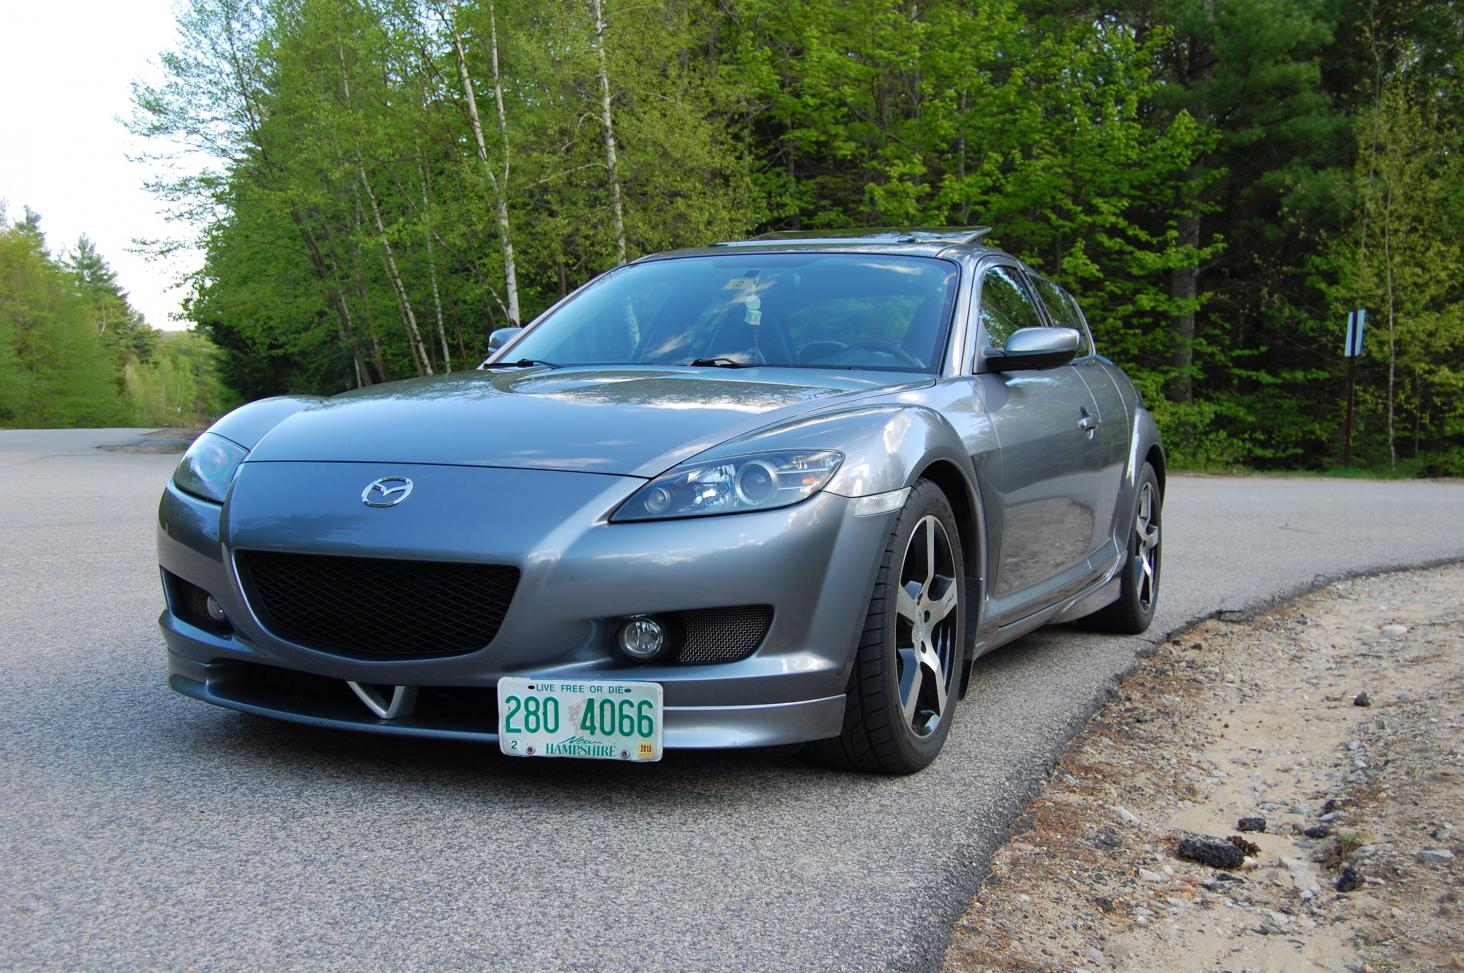 hight resolution of the mazda rx 8 one of the best worst cars a buyers guide i love my mazda rx 8 it s a car that i there are plenty of rx 8 s for